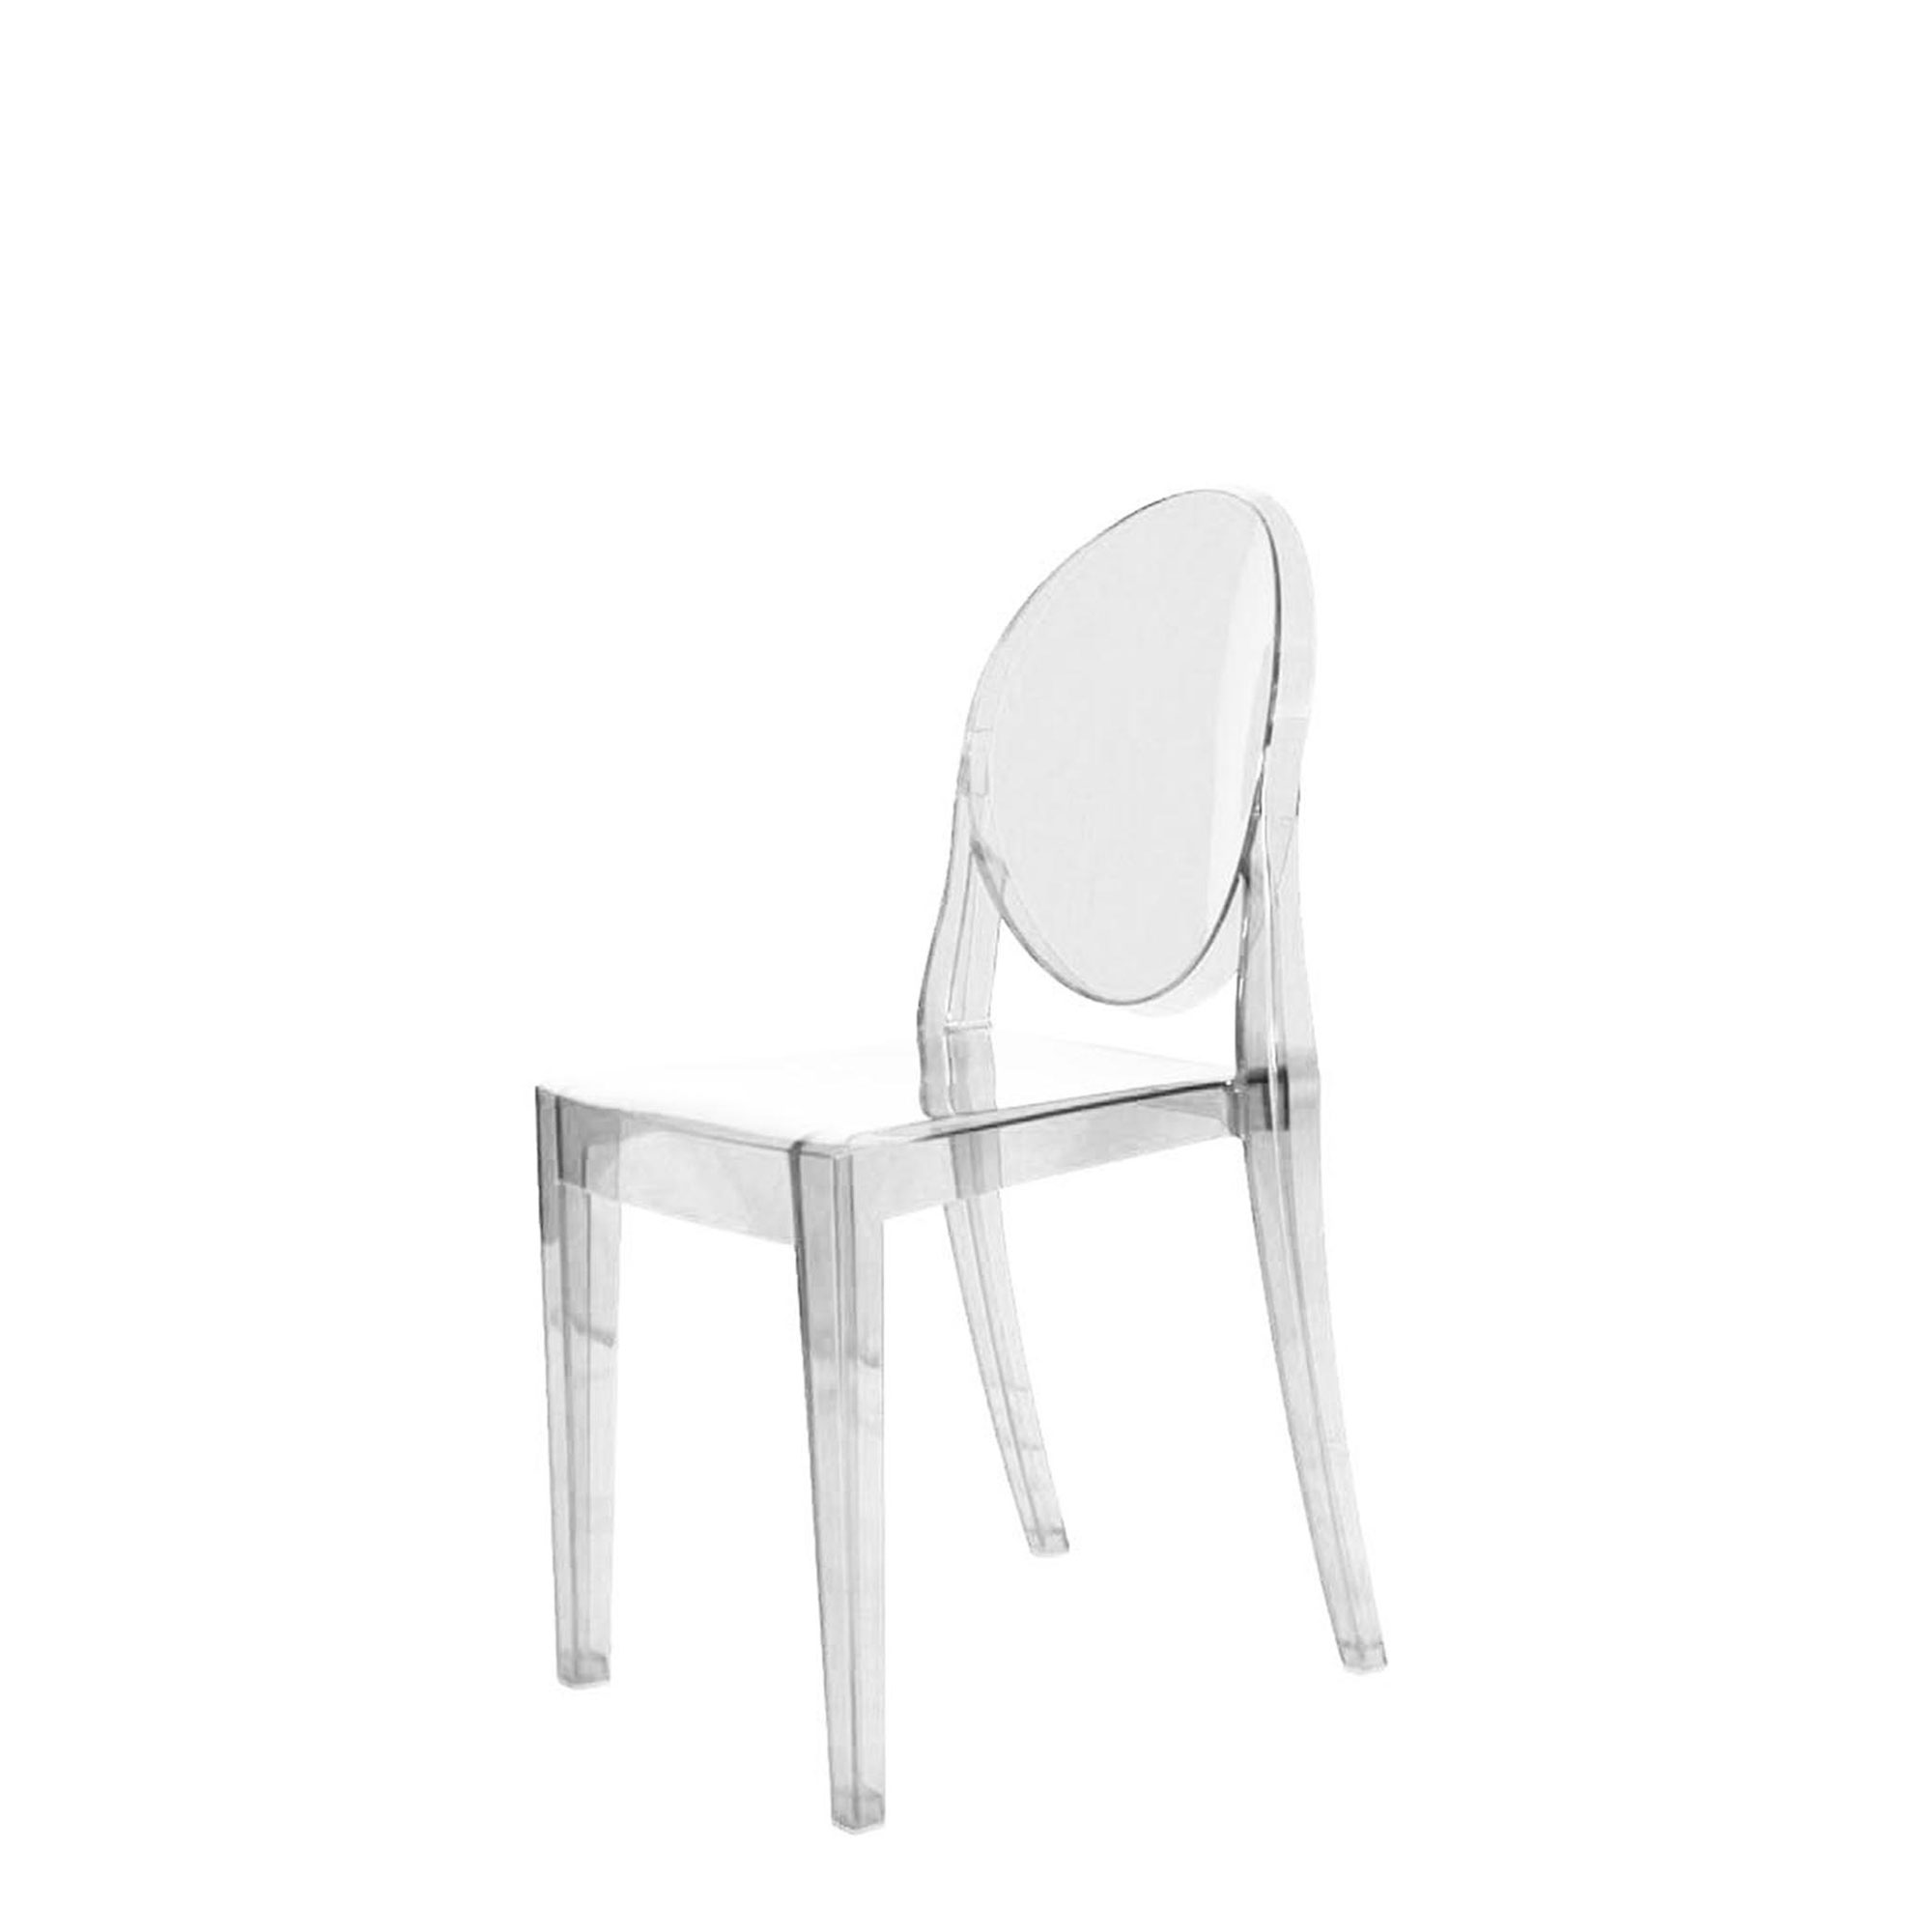 Philippe Starck Ghost Chair Victoria Ghost Chair Victoria Ghost Chair Clear